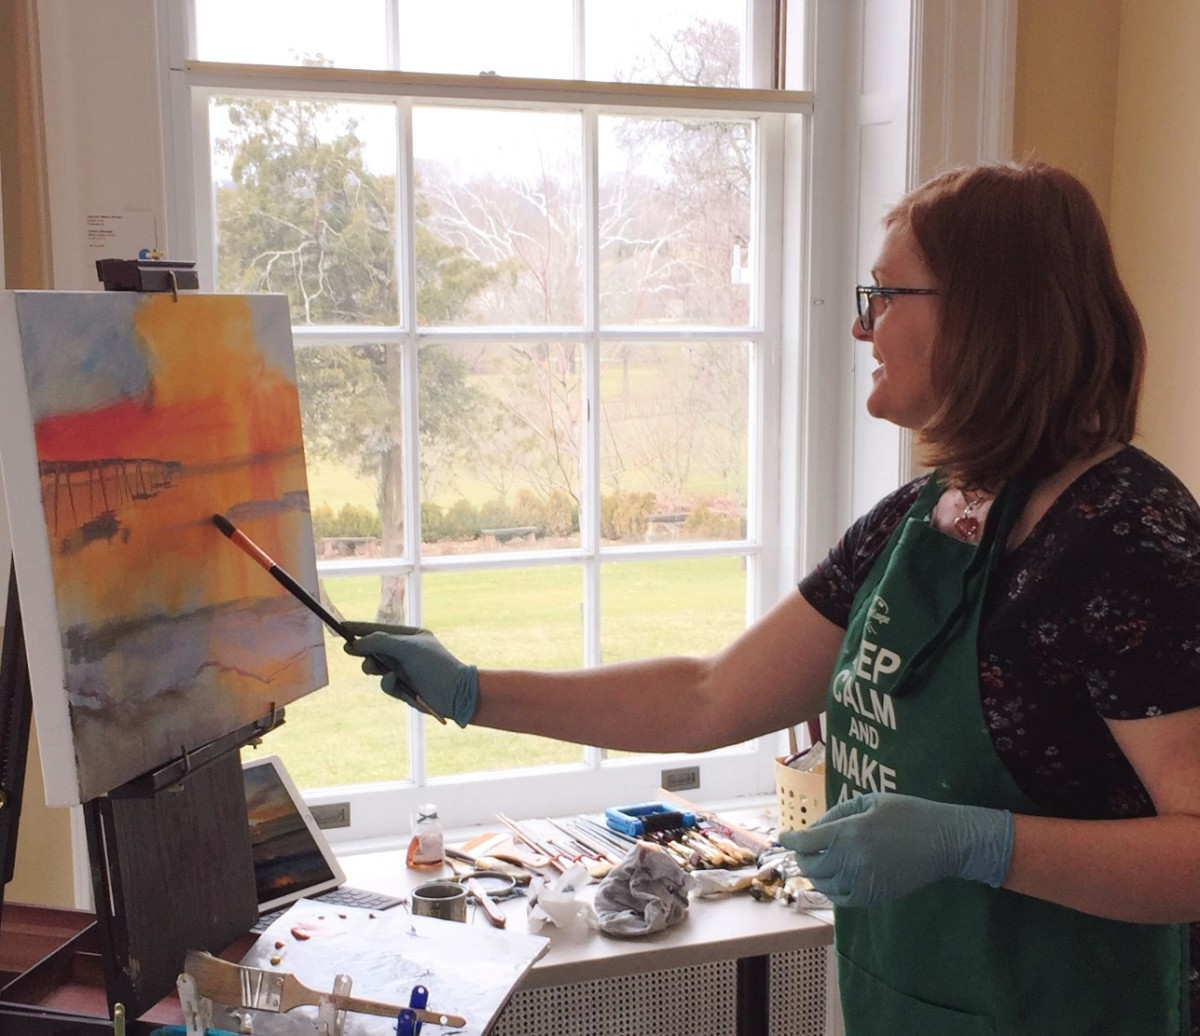 Me loosely starting a painting while giving a demo during an art gallery exhibit - talking about being bold and courageous!